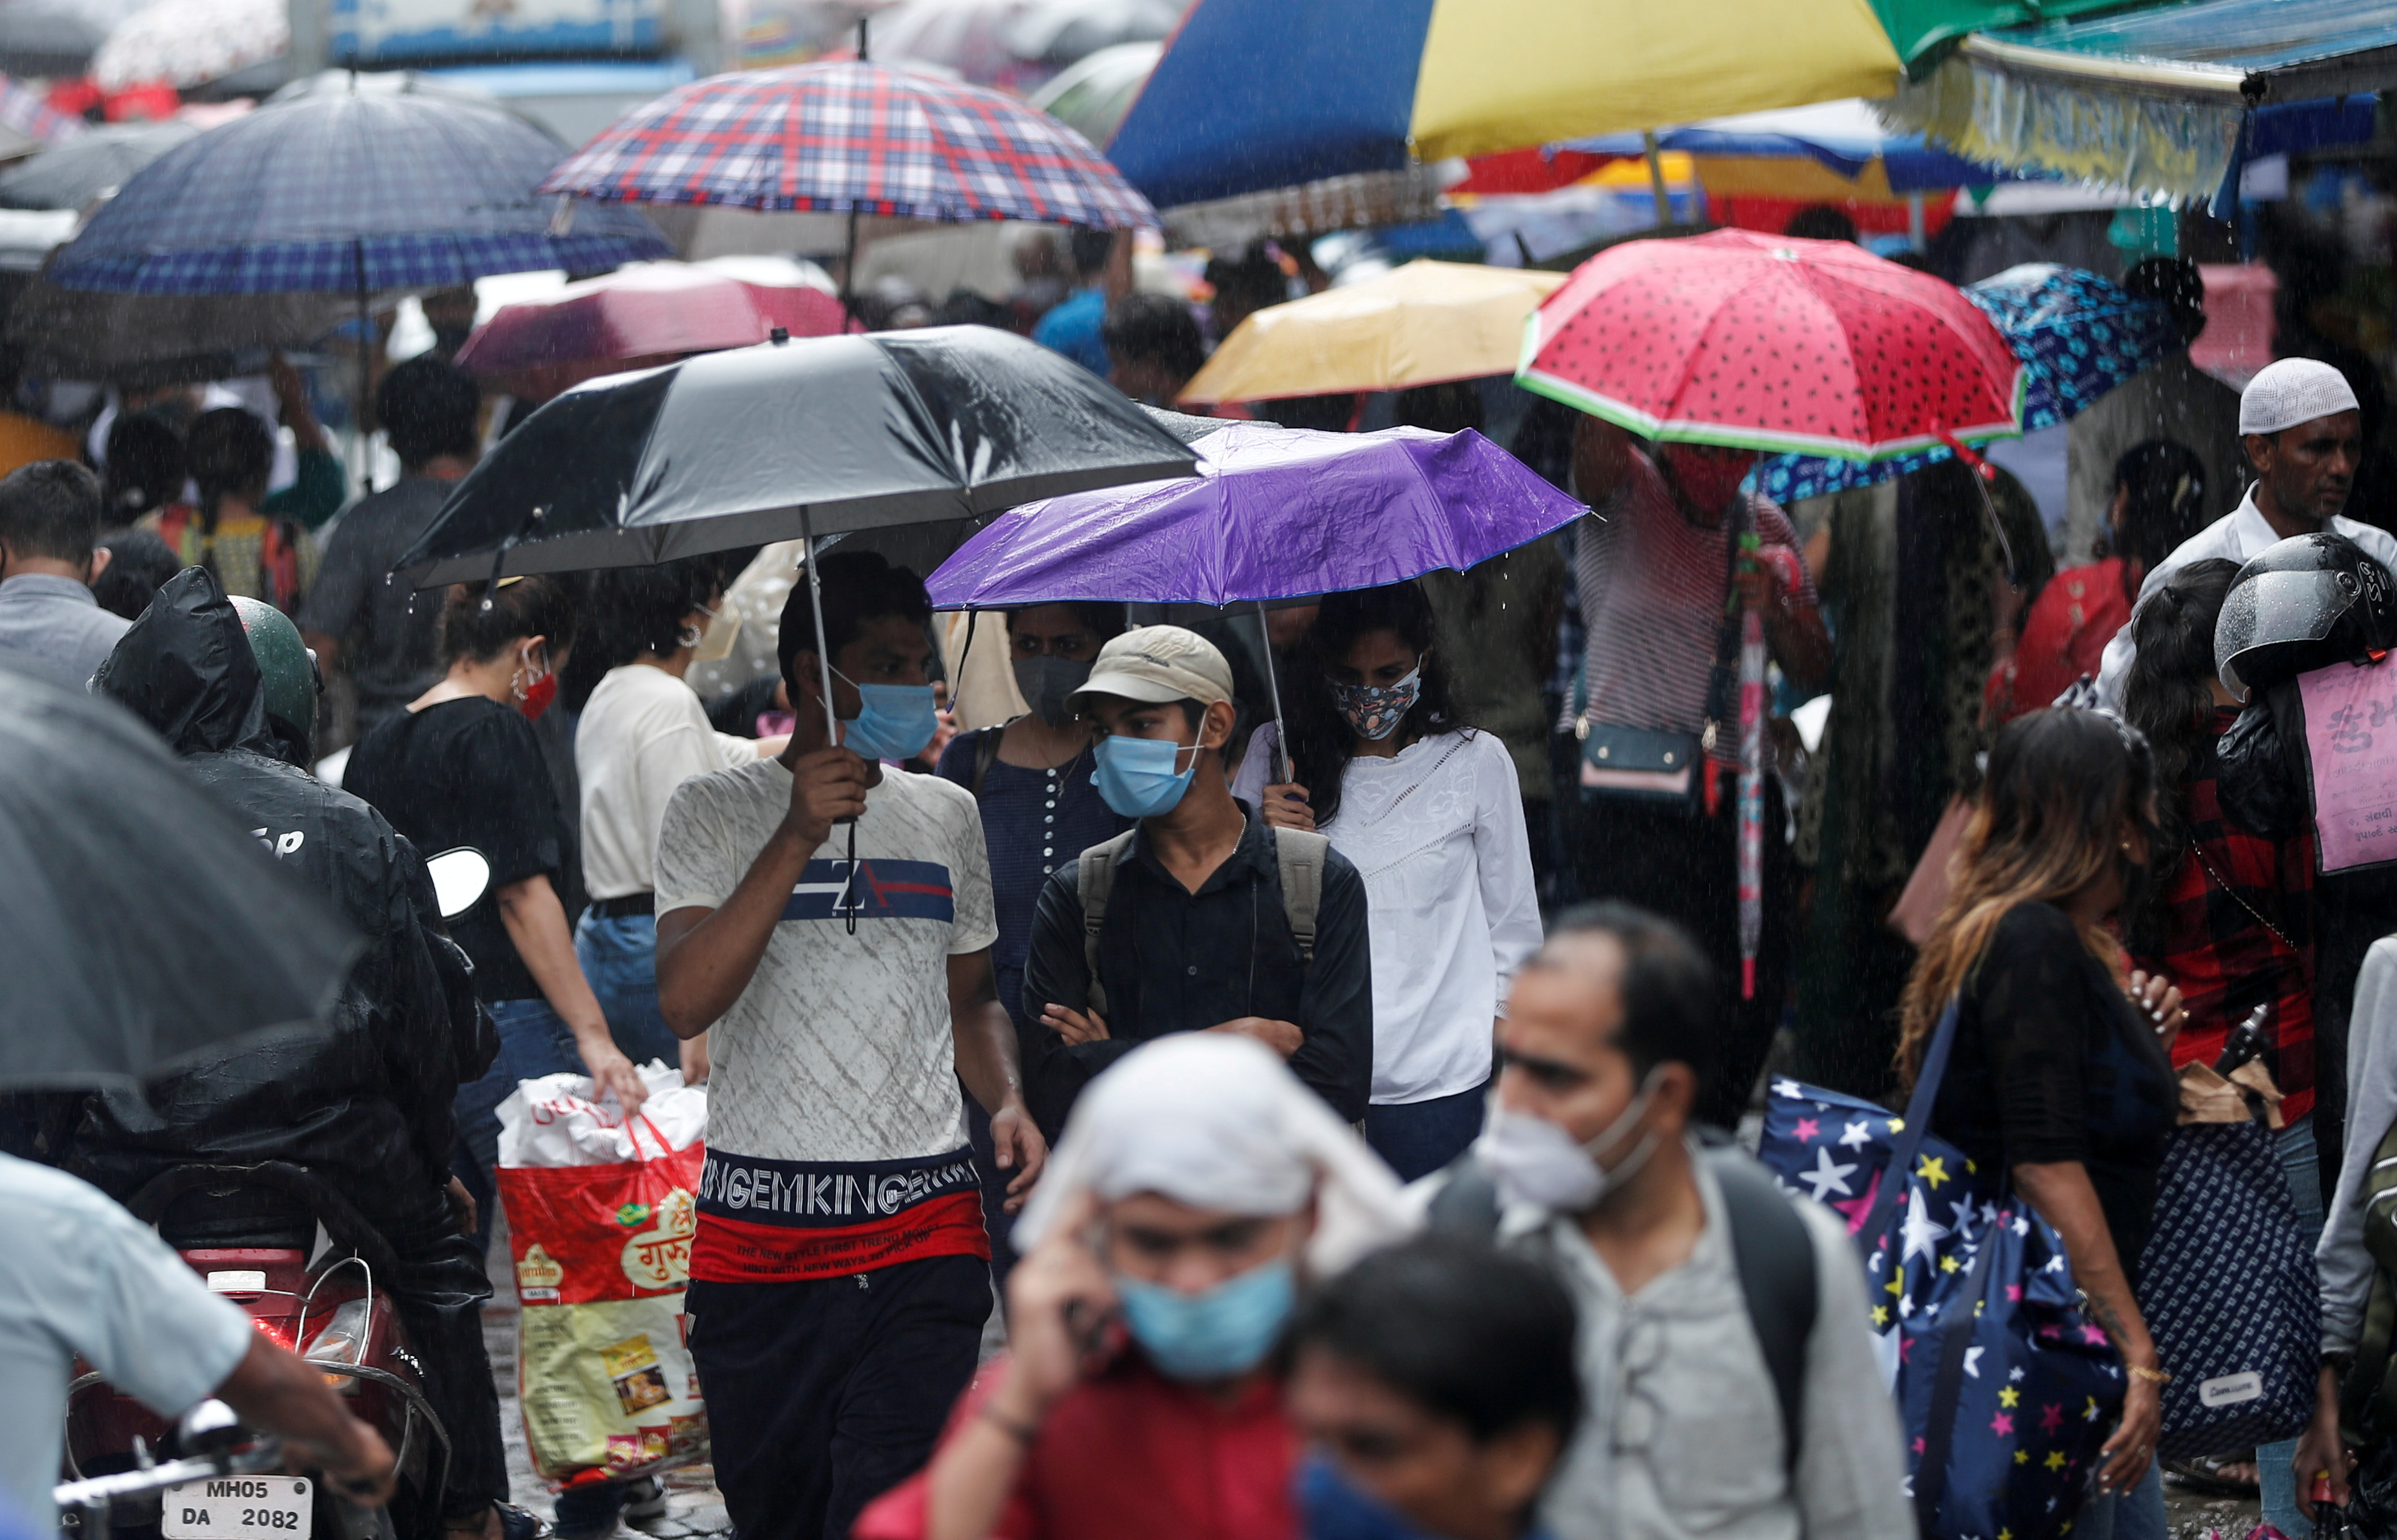 People walk through a crowded market on a rainy day amidst the spread of the coronavirus disease (COVID-19) in Mumbai, India, July 14, 2021. REUTERS/Francis Mascarenhas/File Photo